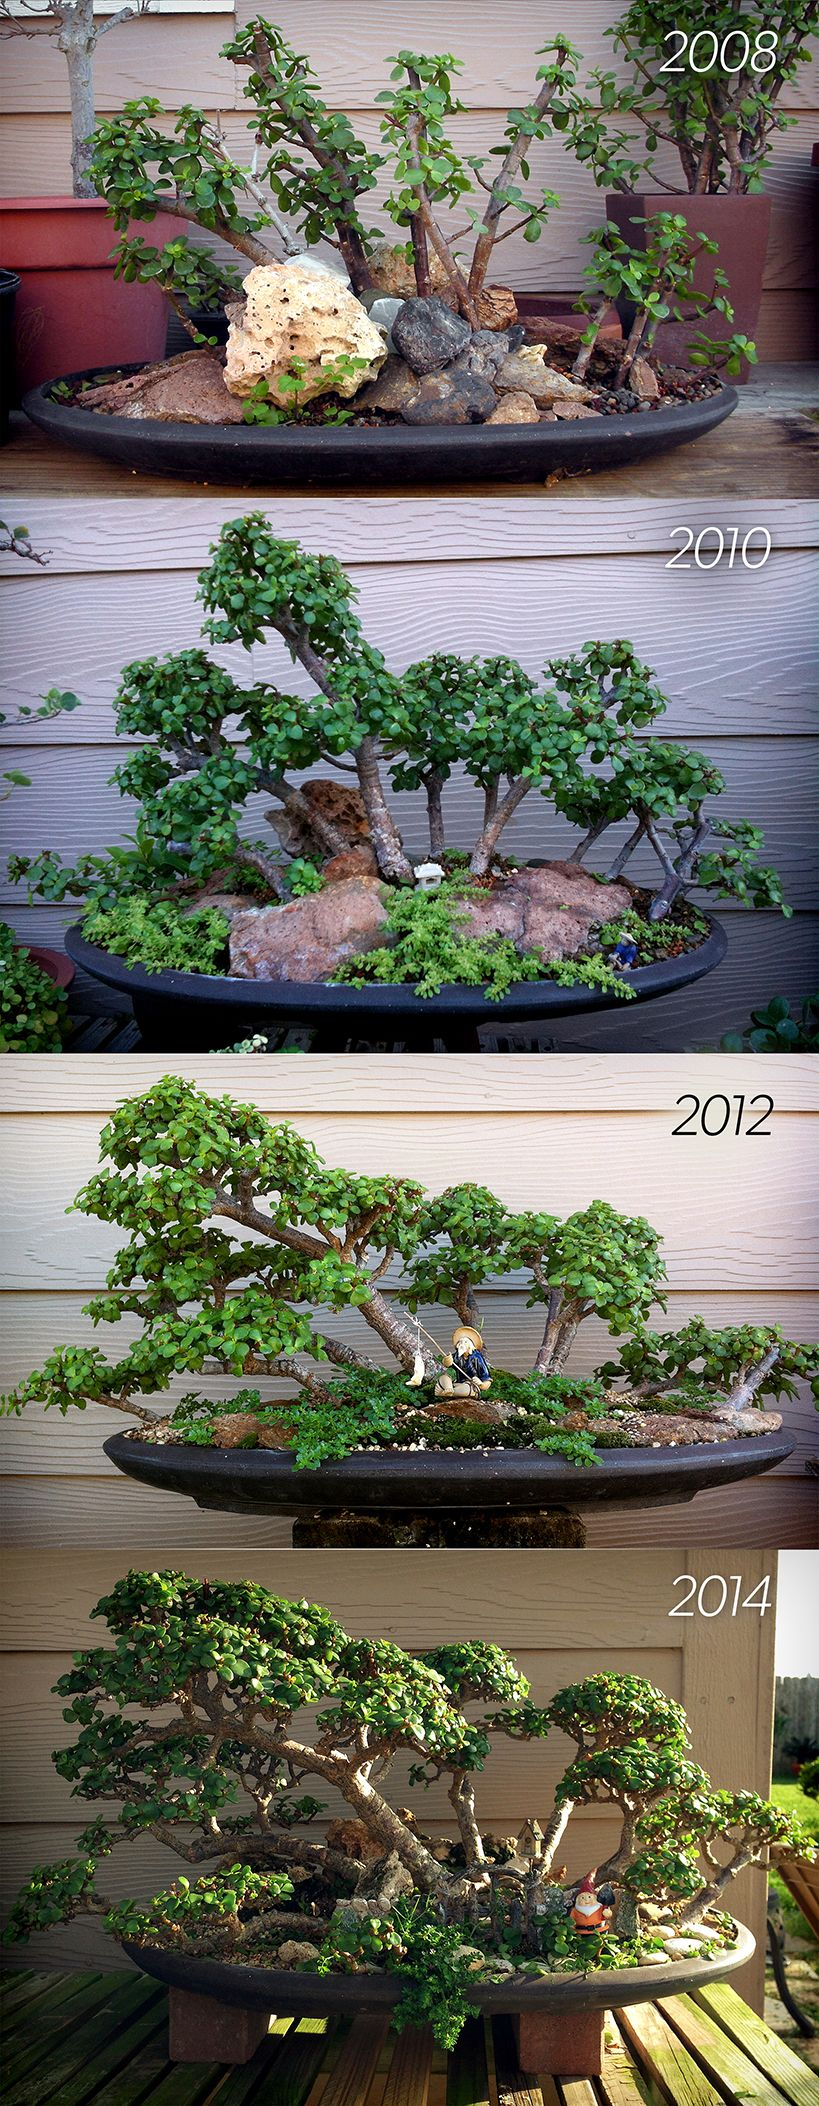 Portulacaria afra (dwarf jade) bonsai forest started from a garden center plant. 6 years in training. The first picture shows how I started the group using rocks to keep the trunks upright. Then for the next few years I constantly pruned to achieve the overall shape. The last picture shows the group in April 2014. Still nowhere near complete but that's the best part of bonsai. It's never finished.